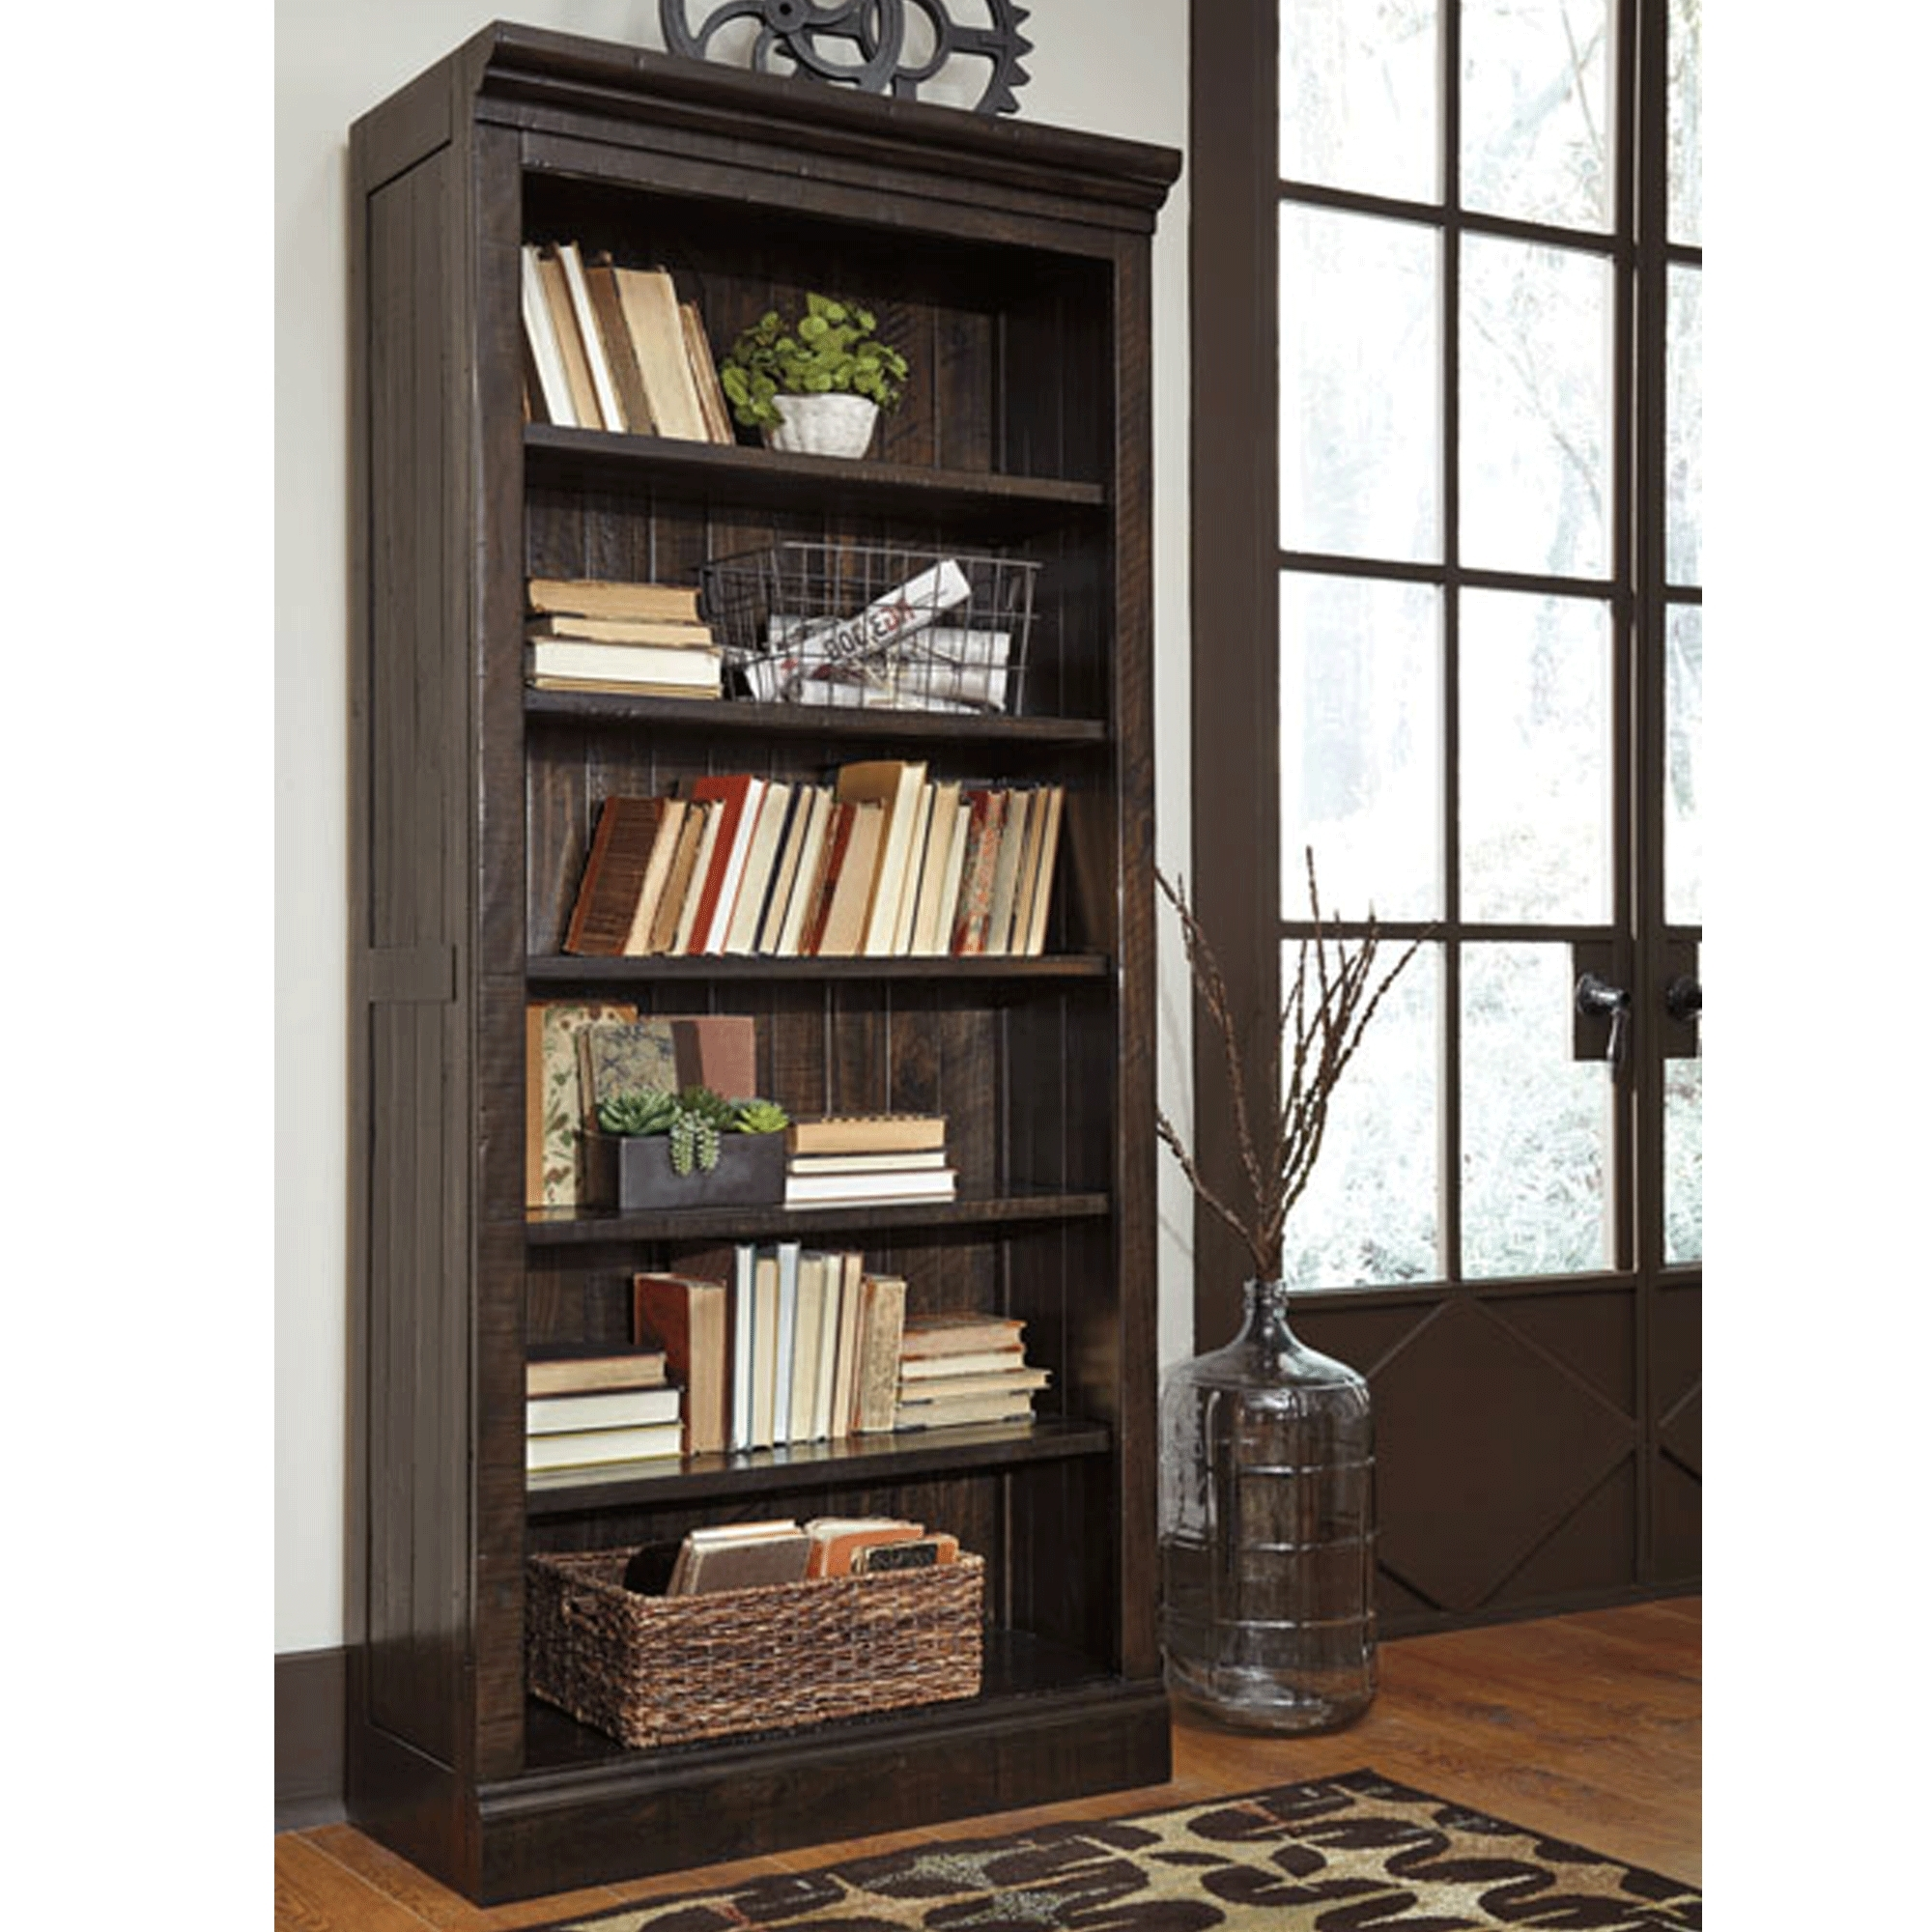 Ashley Furniture Bookcase Dazzling Design – Furniture Idea For Latest Ashley Furniture Bookcases (View 6 of 15)